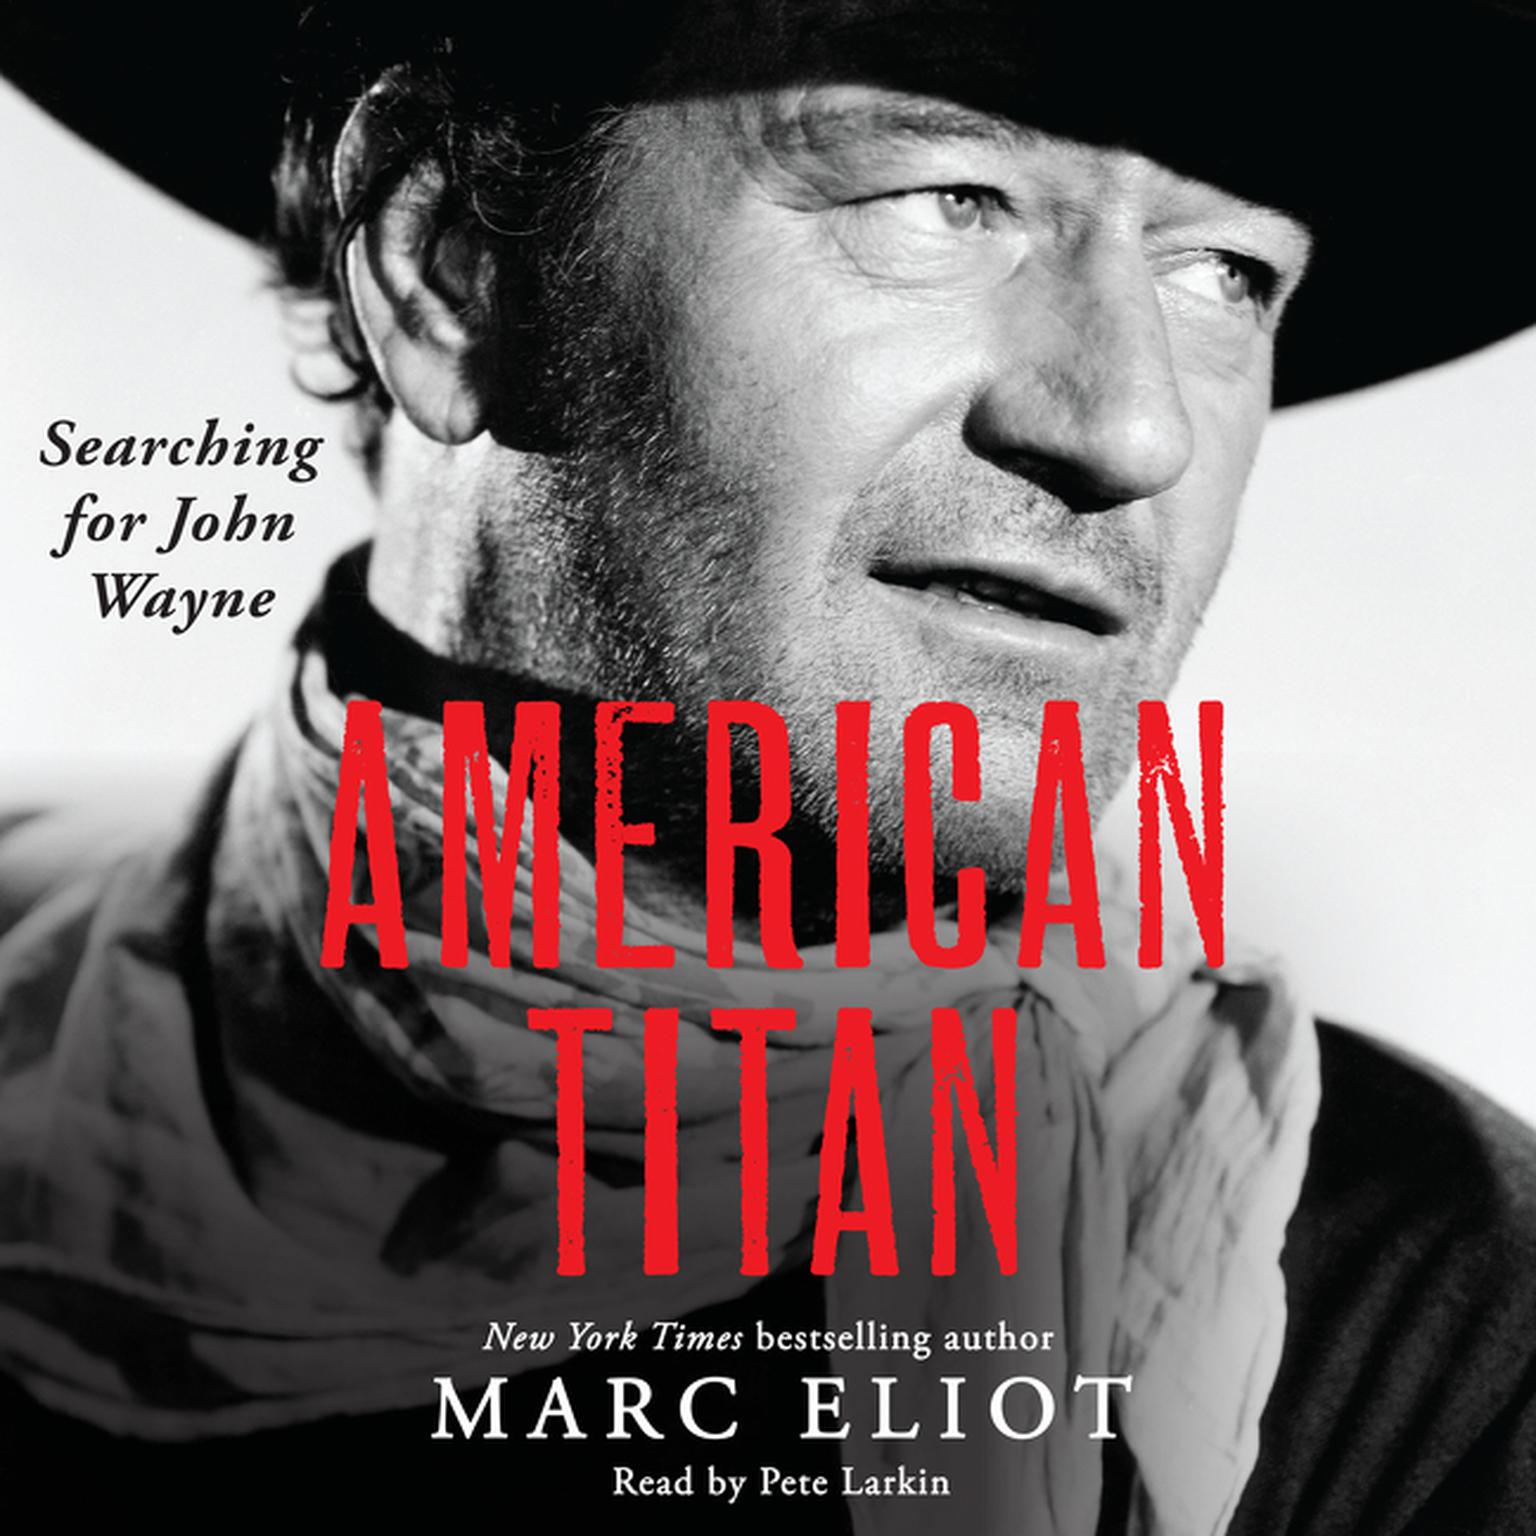 Printable American Titan: Searching for John Wayne Audiobook Cover Art